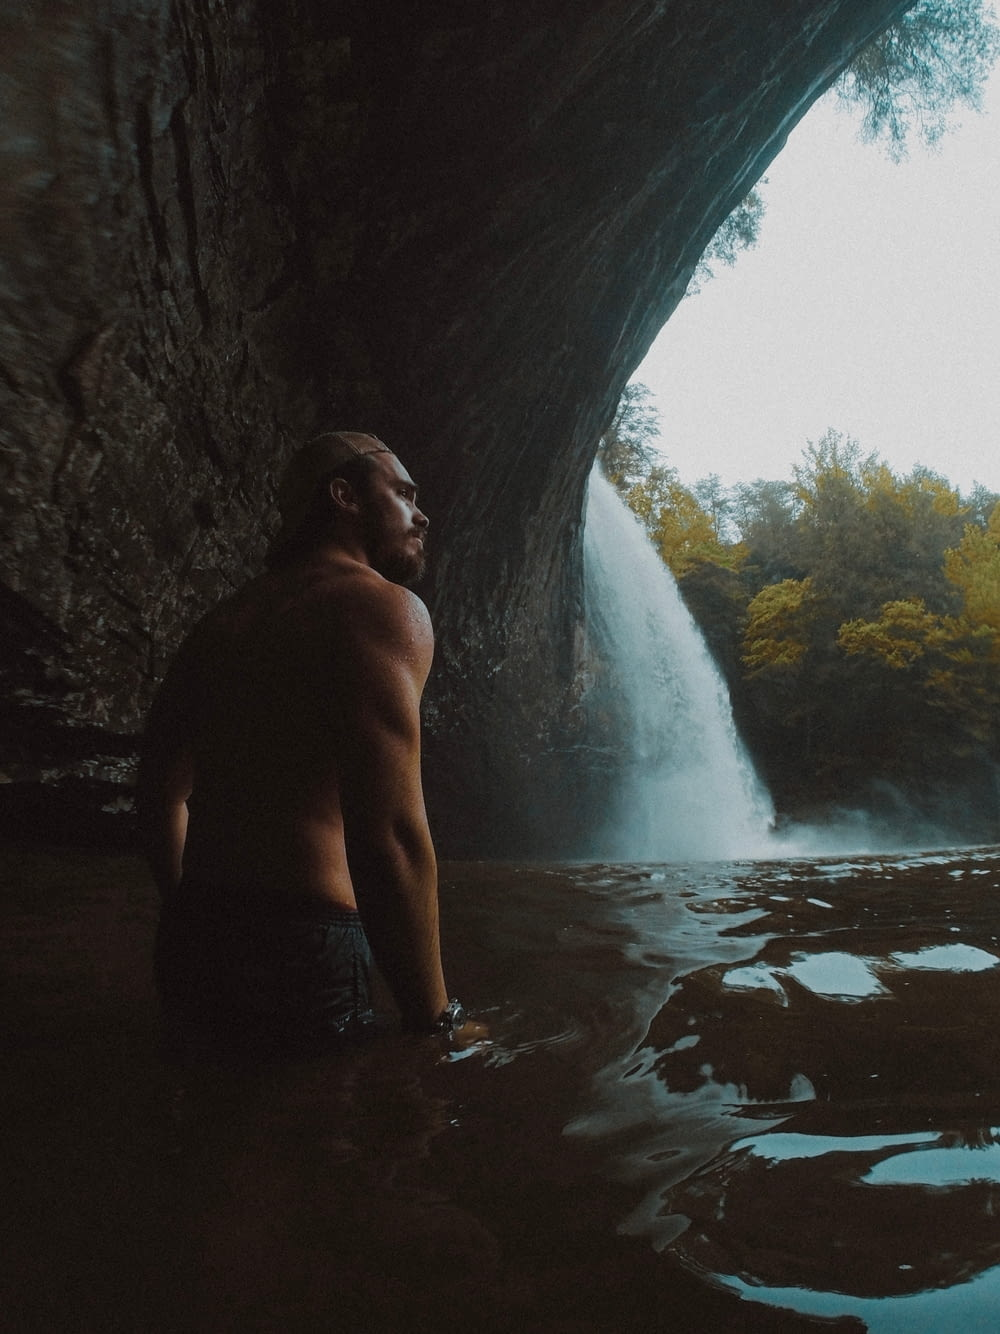 topless man in black shorts standing in cave